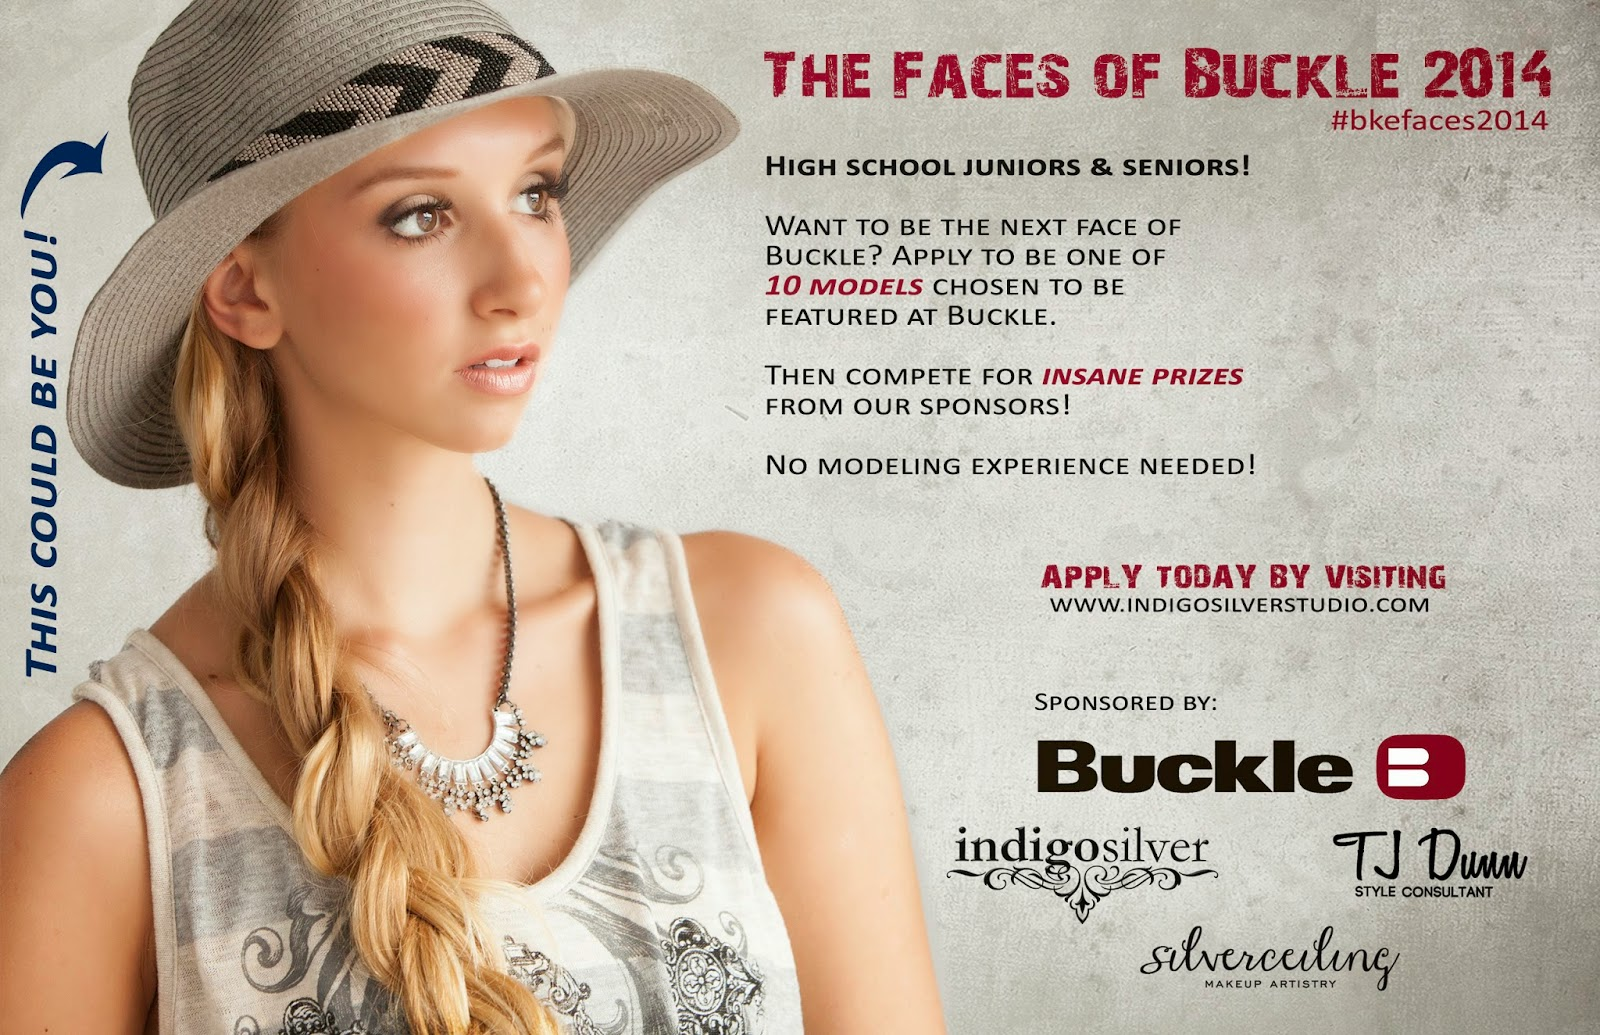 faces of buckle 2014 | calling all high school juniors and seniors